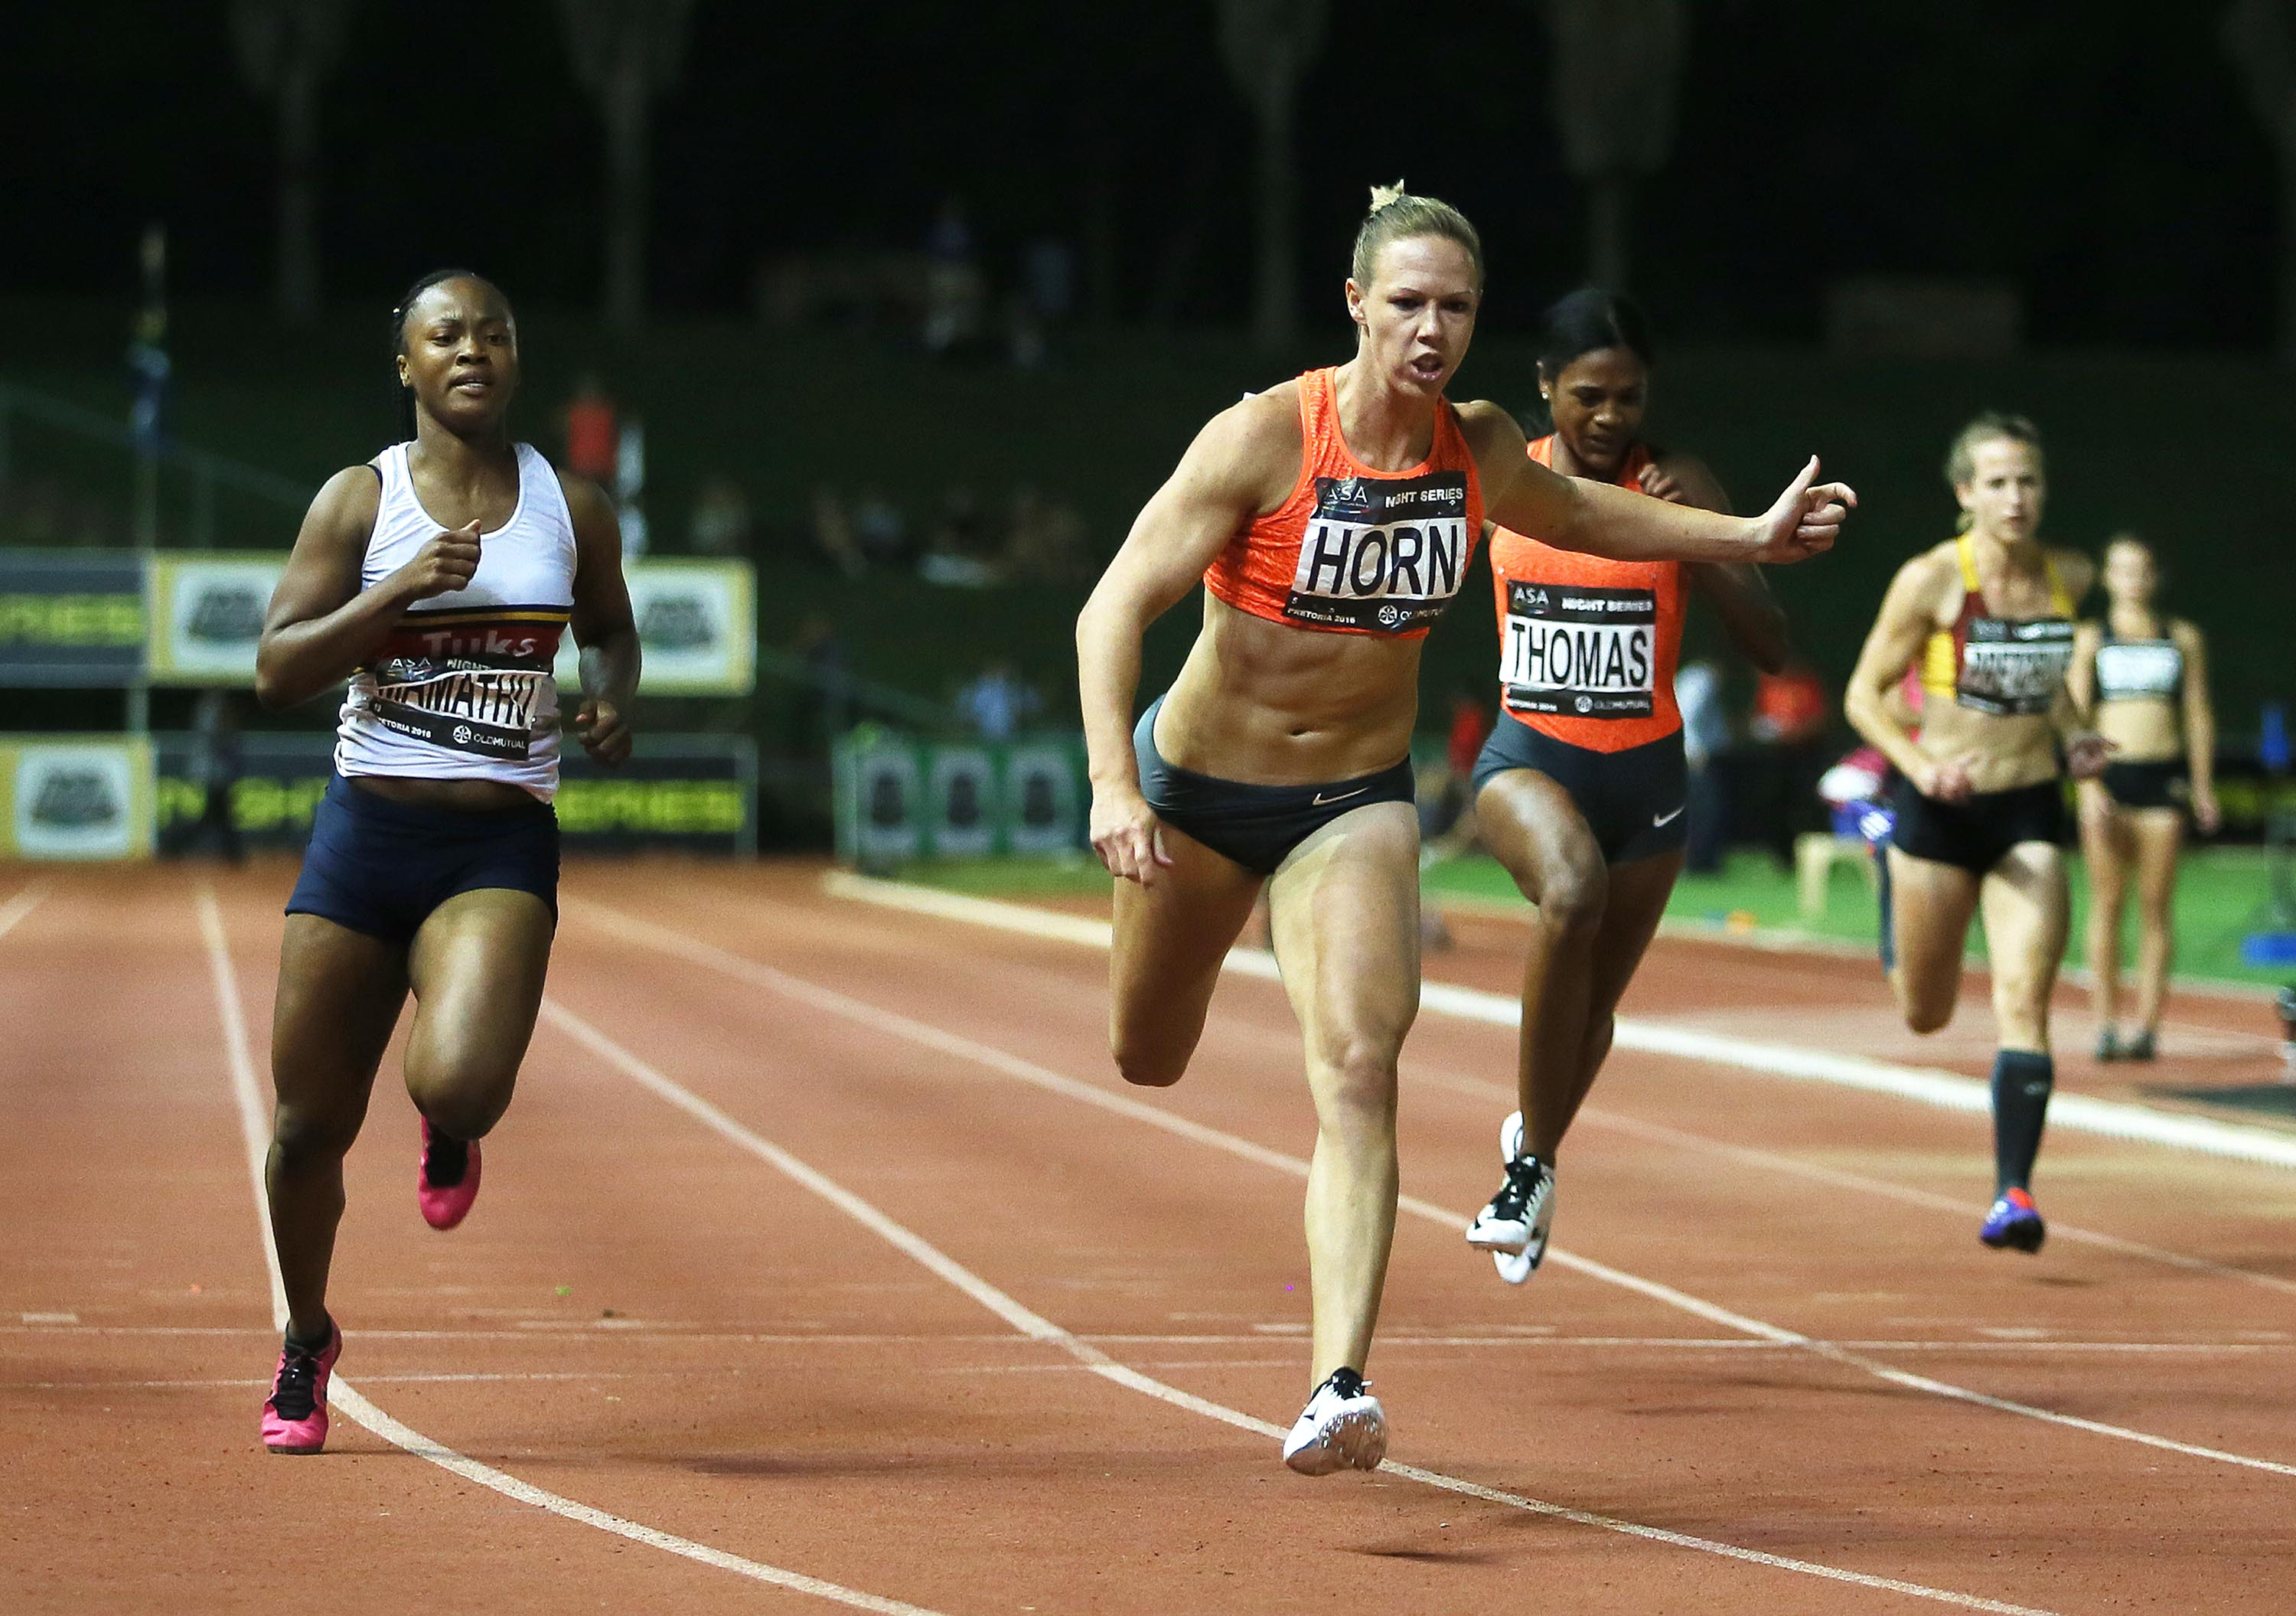 Horn has unfinished business as she races in Rabat